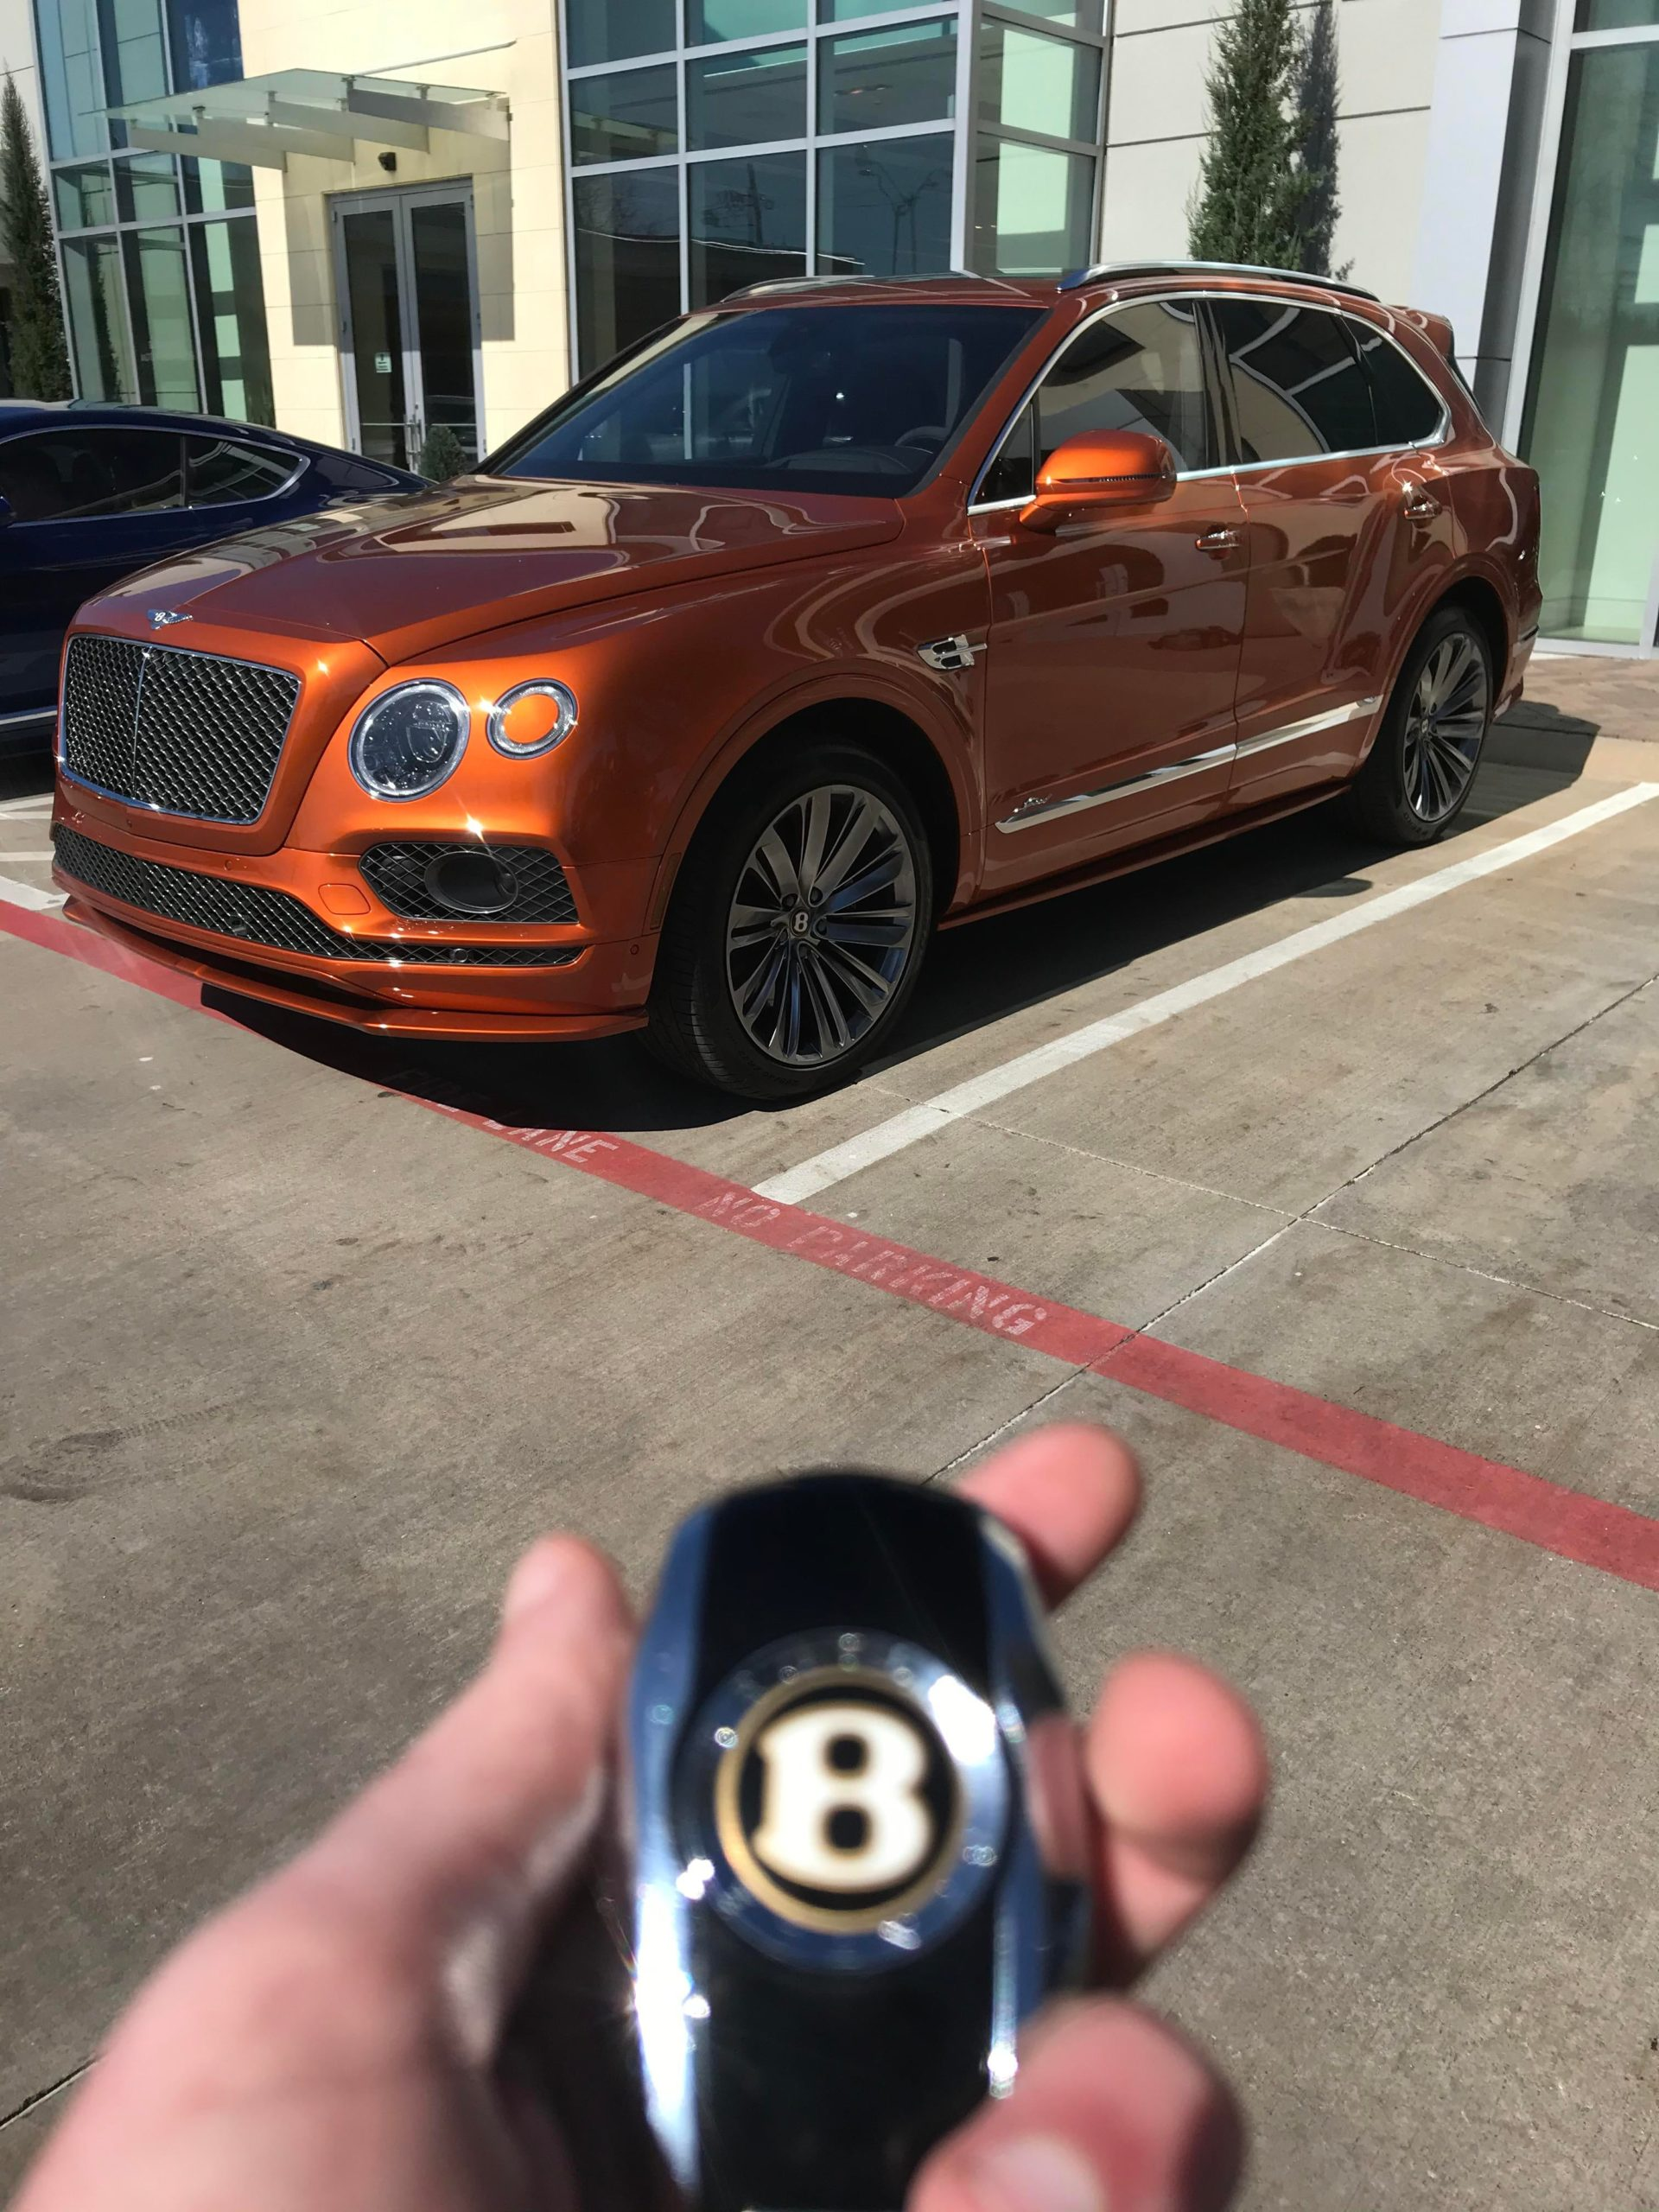 Bentley Bentayga Speed. The fastest production SUV on the planet with a top speed of 190 MPH.